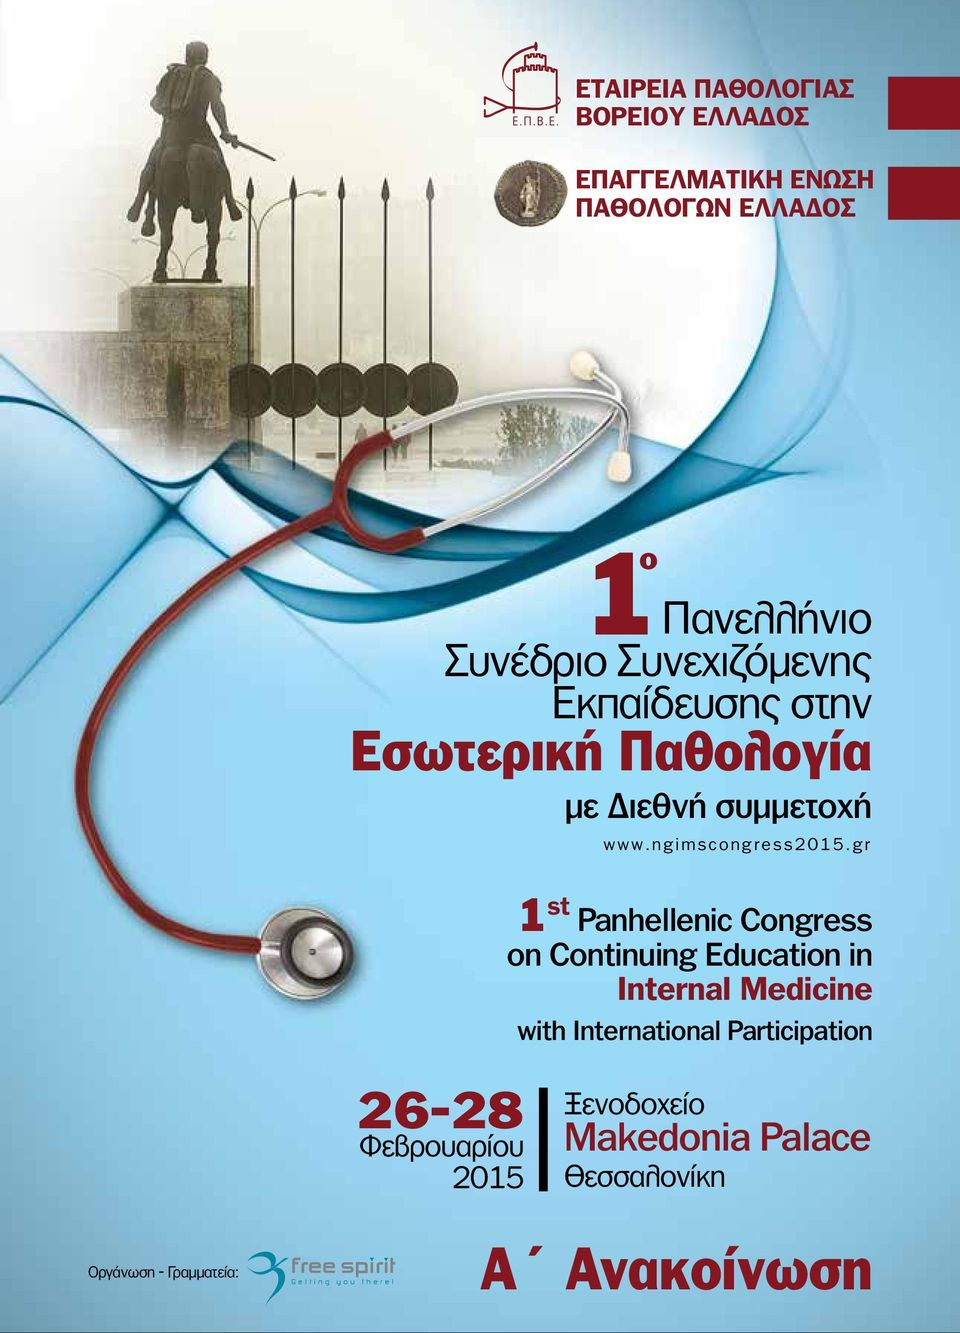 gr 1 st Panhellenic Congress on Continuing Education in Internal Medicine with International